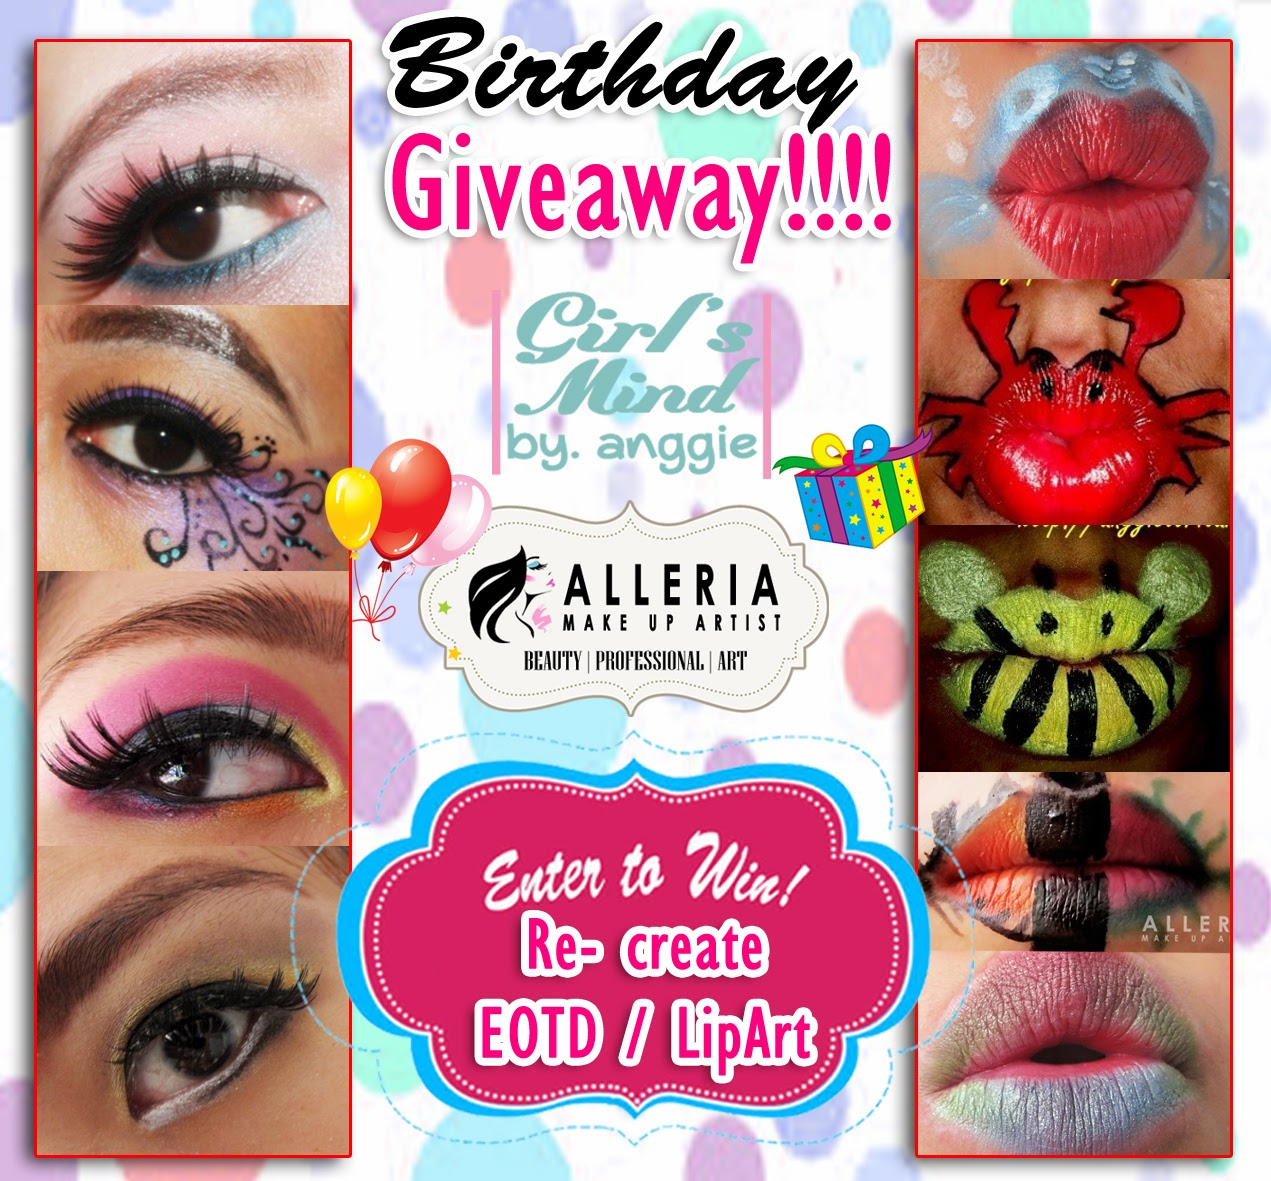 http://anggieloritairianto.blogspot.com/2014/11/my-1st-birthday-giveaway-ft-alleria.html